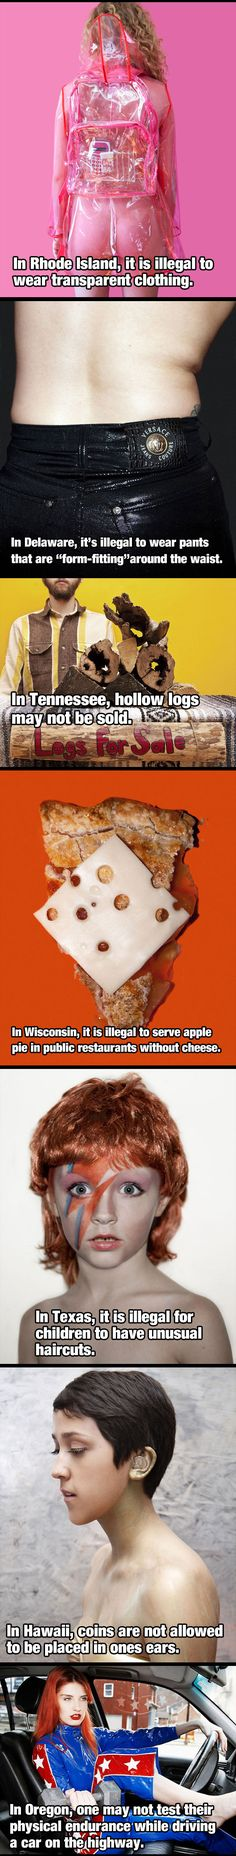 America's Most Bizarre Laws // funny pictures - funny photos - funny images - funny pics - funny quotes - #lol #humor #funnypictures